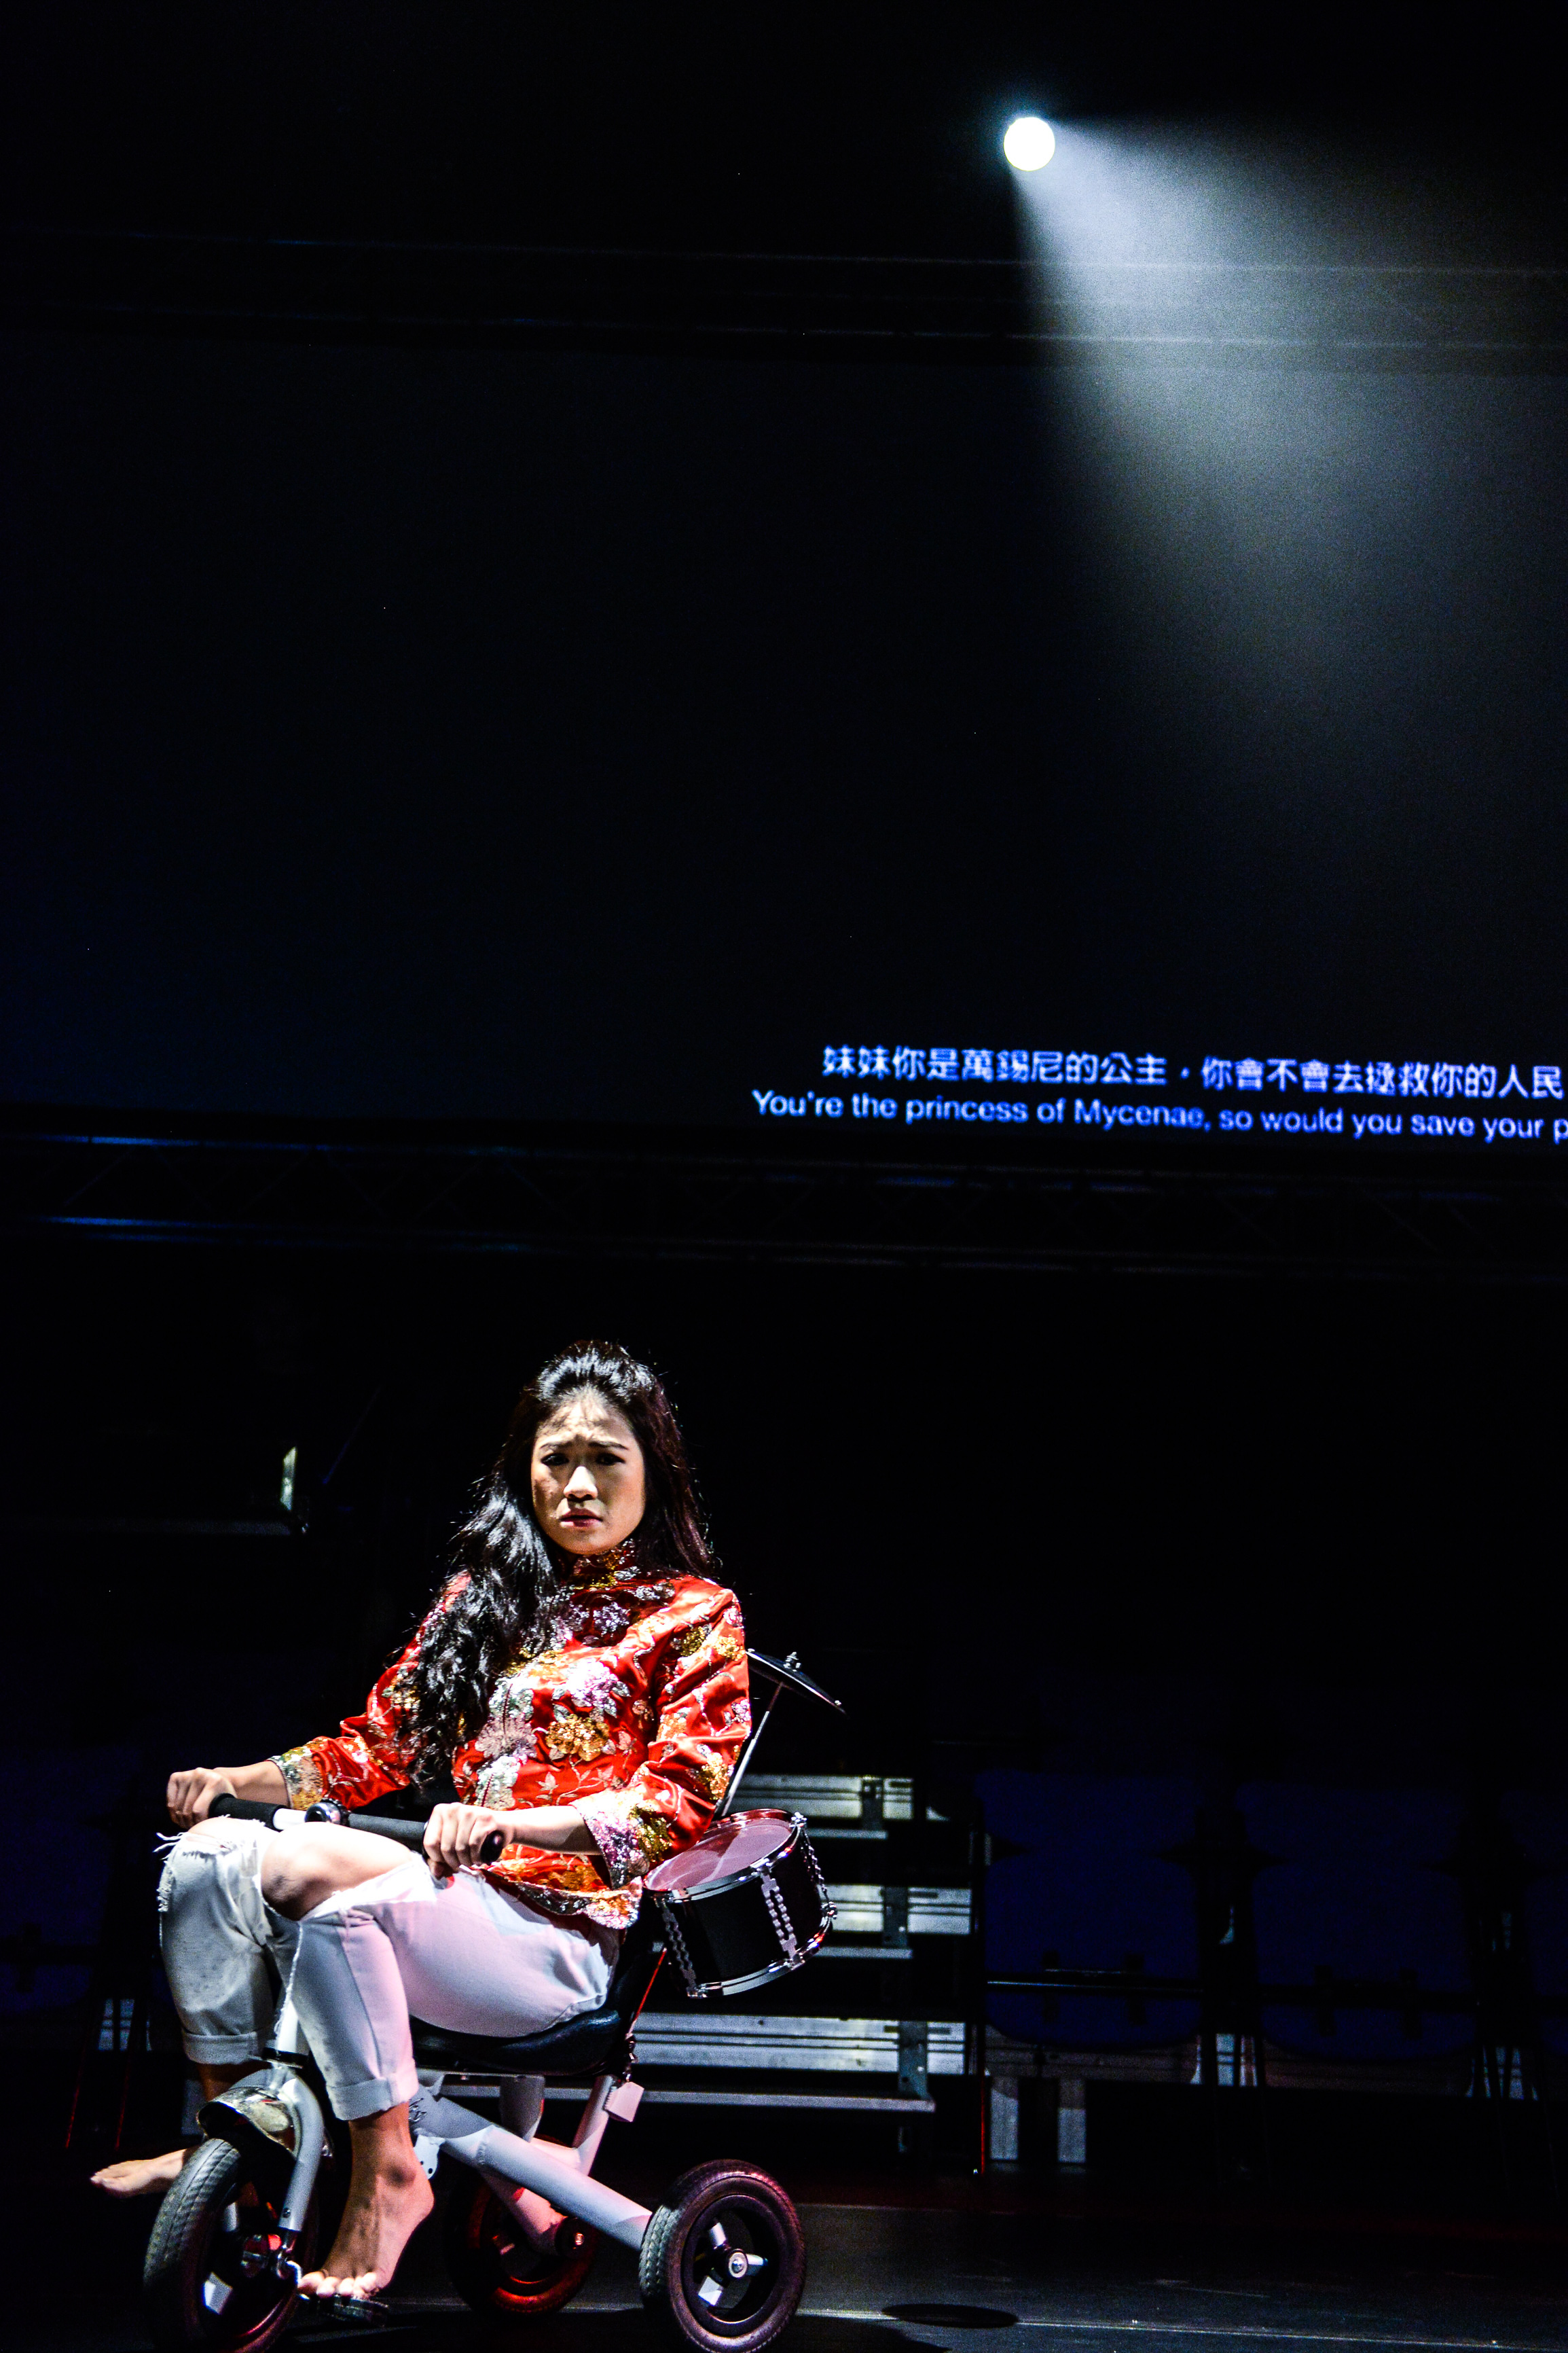 The Furies Variations, Rooftop Productions Theatre Hong Kong 2018 | Featuring: Chan Wing Shuen | Tagged as: Show, The Furies Variations | Photo: Fung Wai Sun |  (Rooftop Productions • Hong Kong Theatre Company)